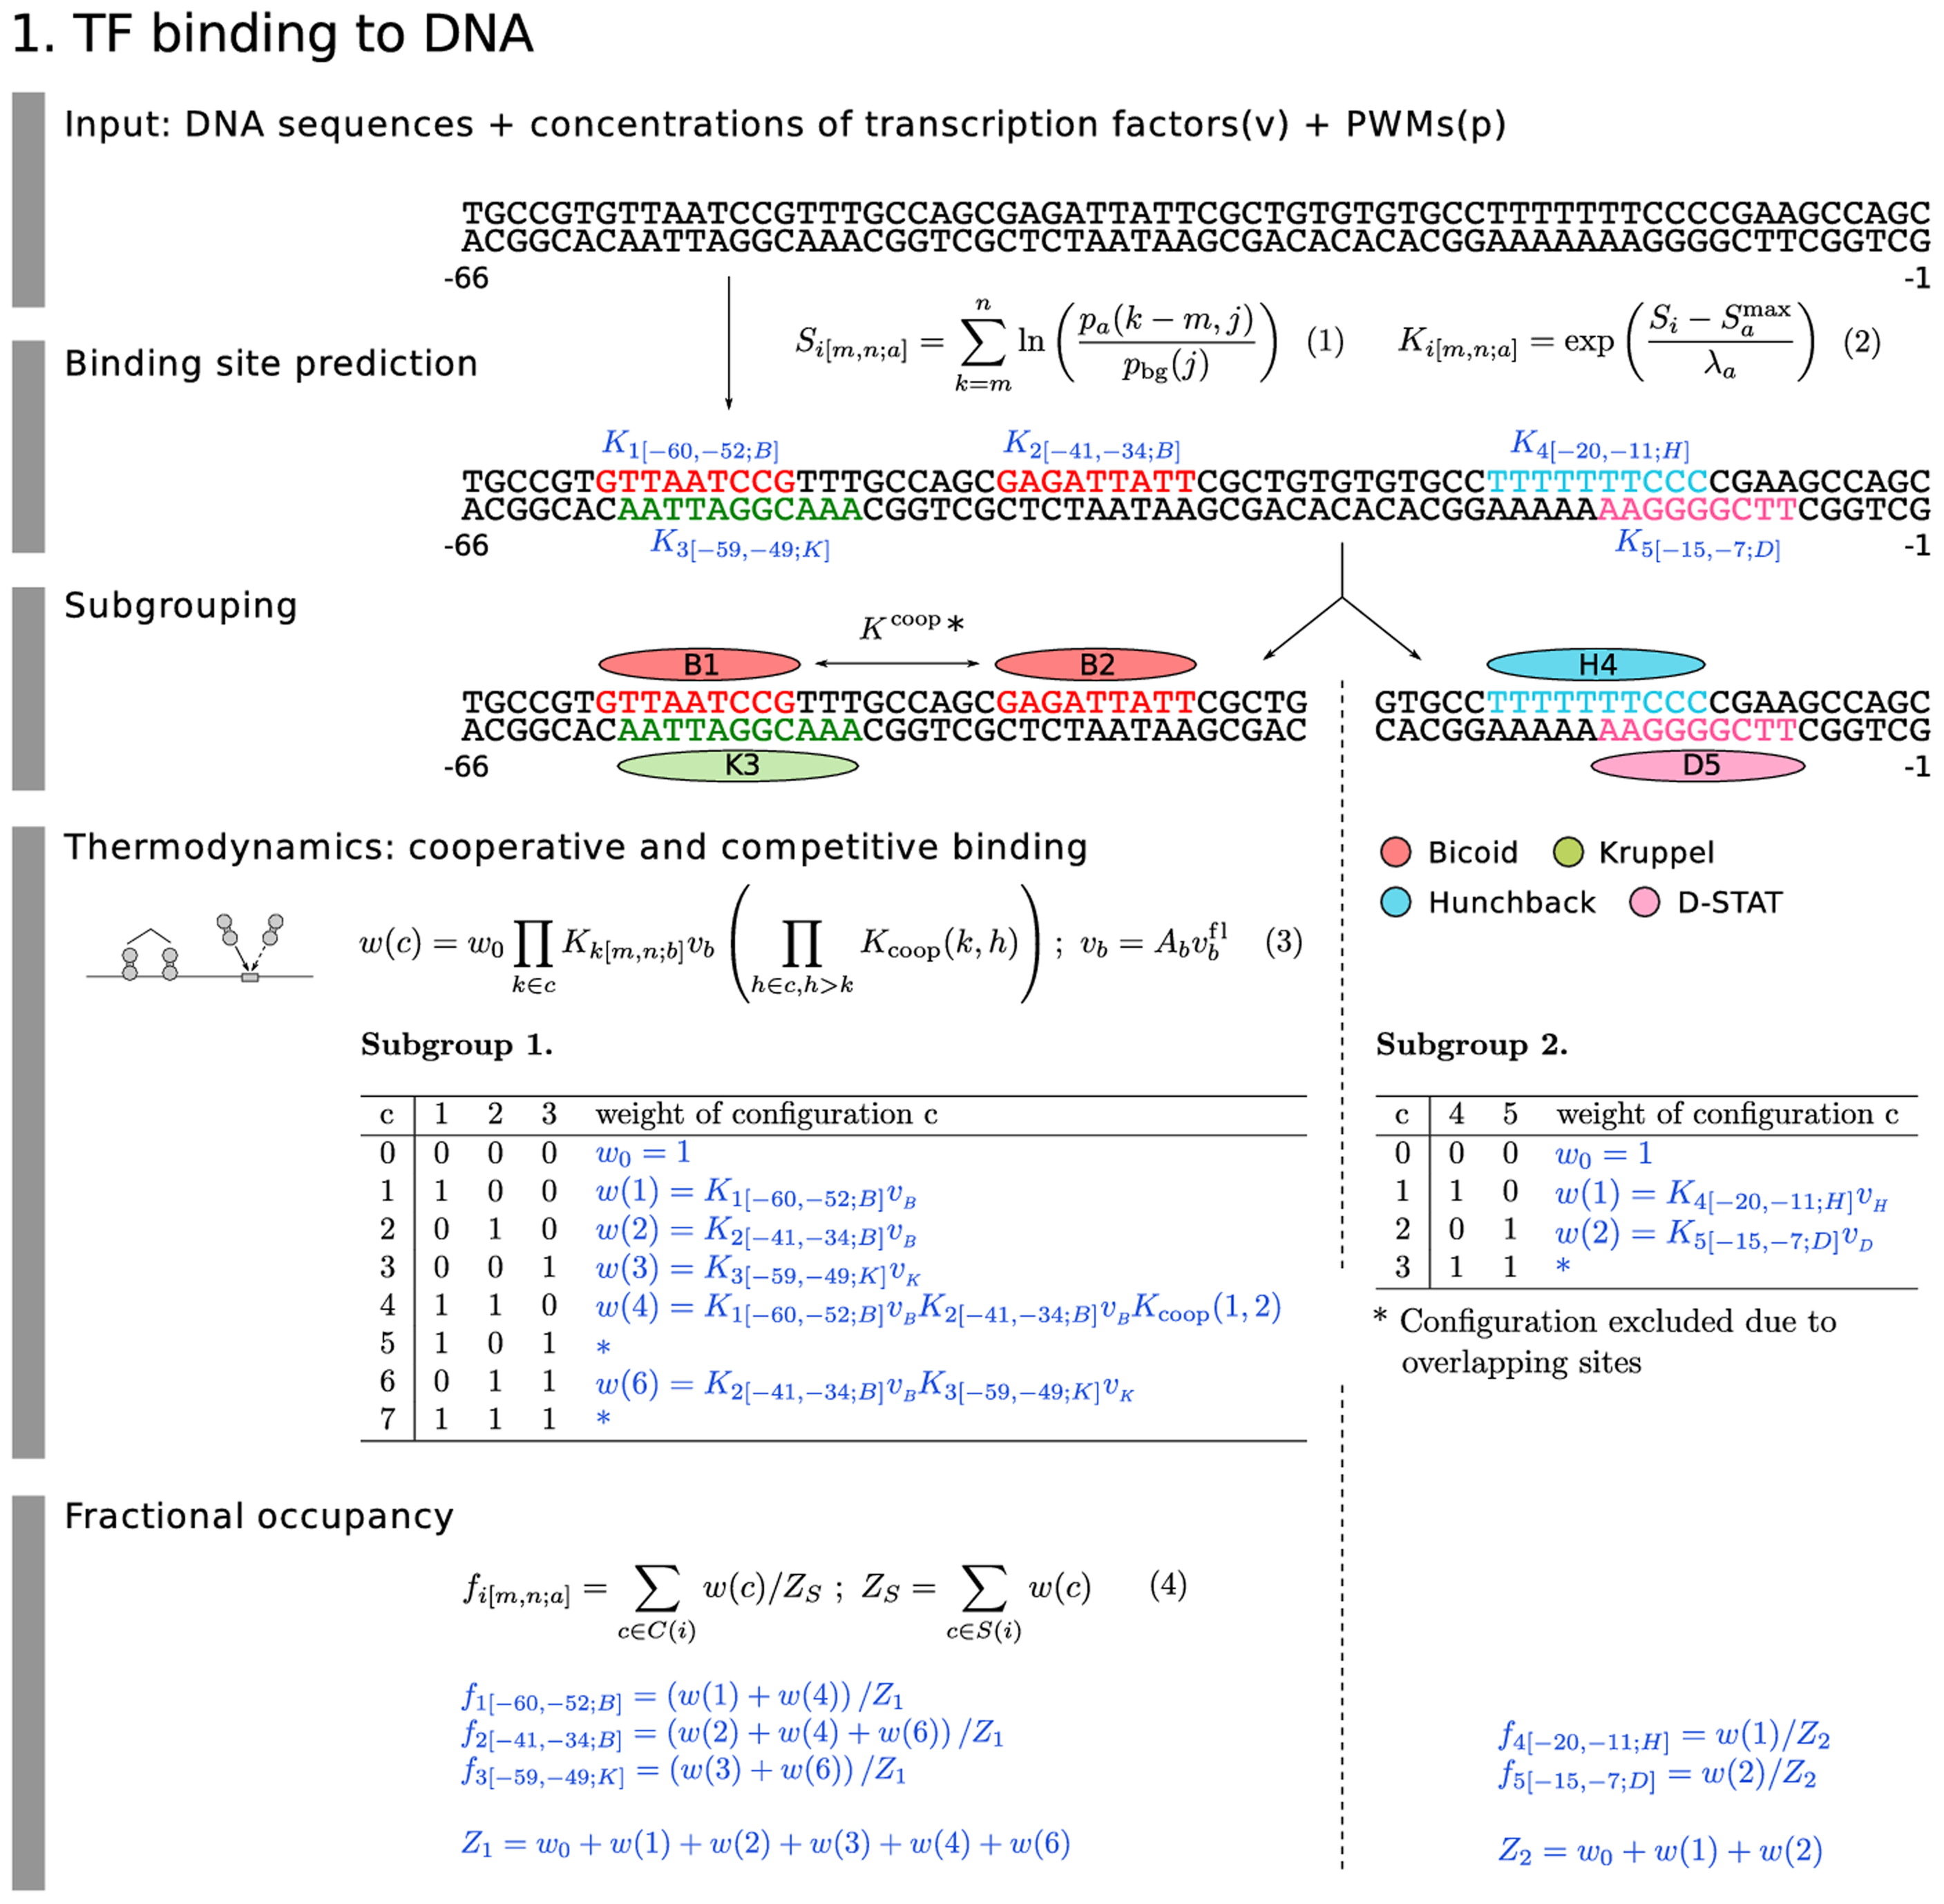 Model equations: TF binding to DNA.